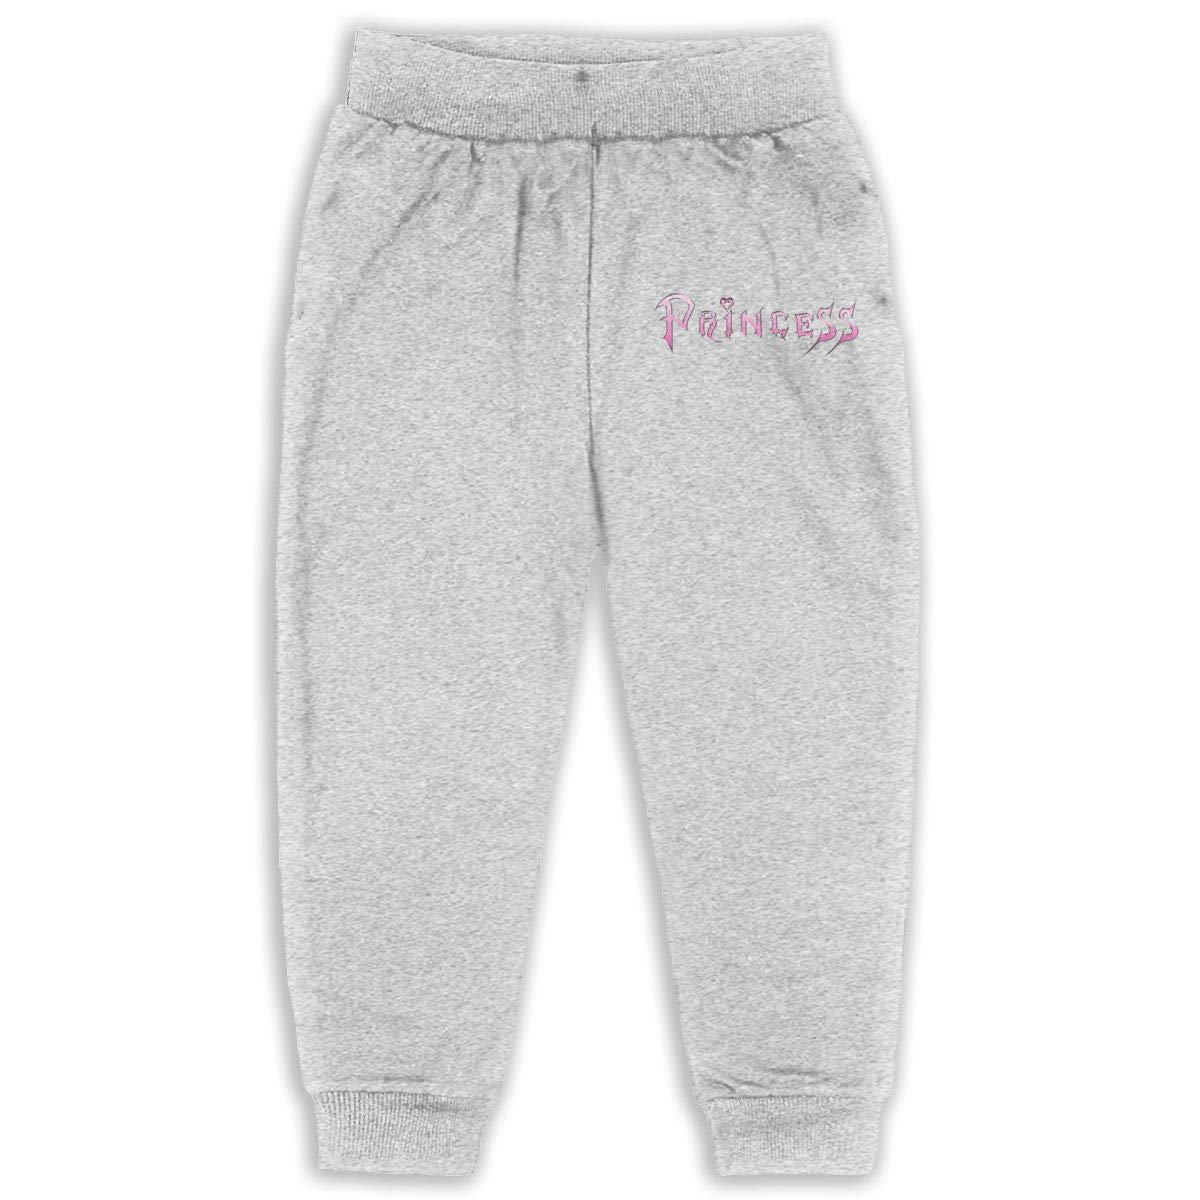 Art Word Pink Princess Children Cartoon Cotton Sweatpants Sport Jogger Elastic Pants